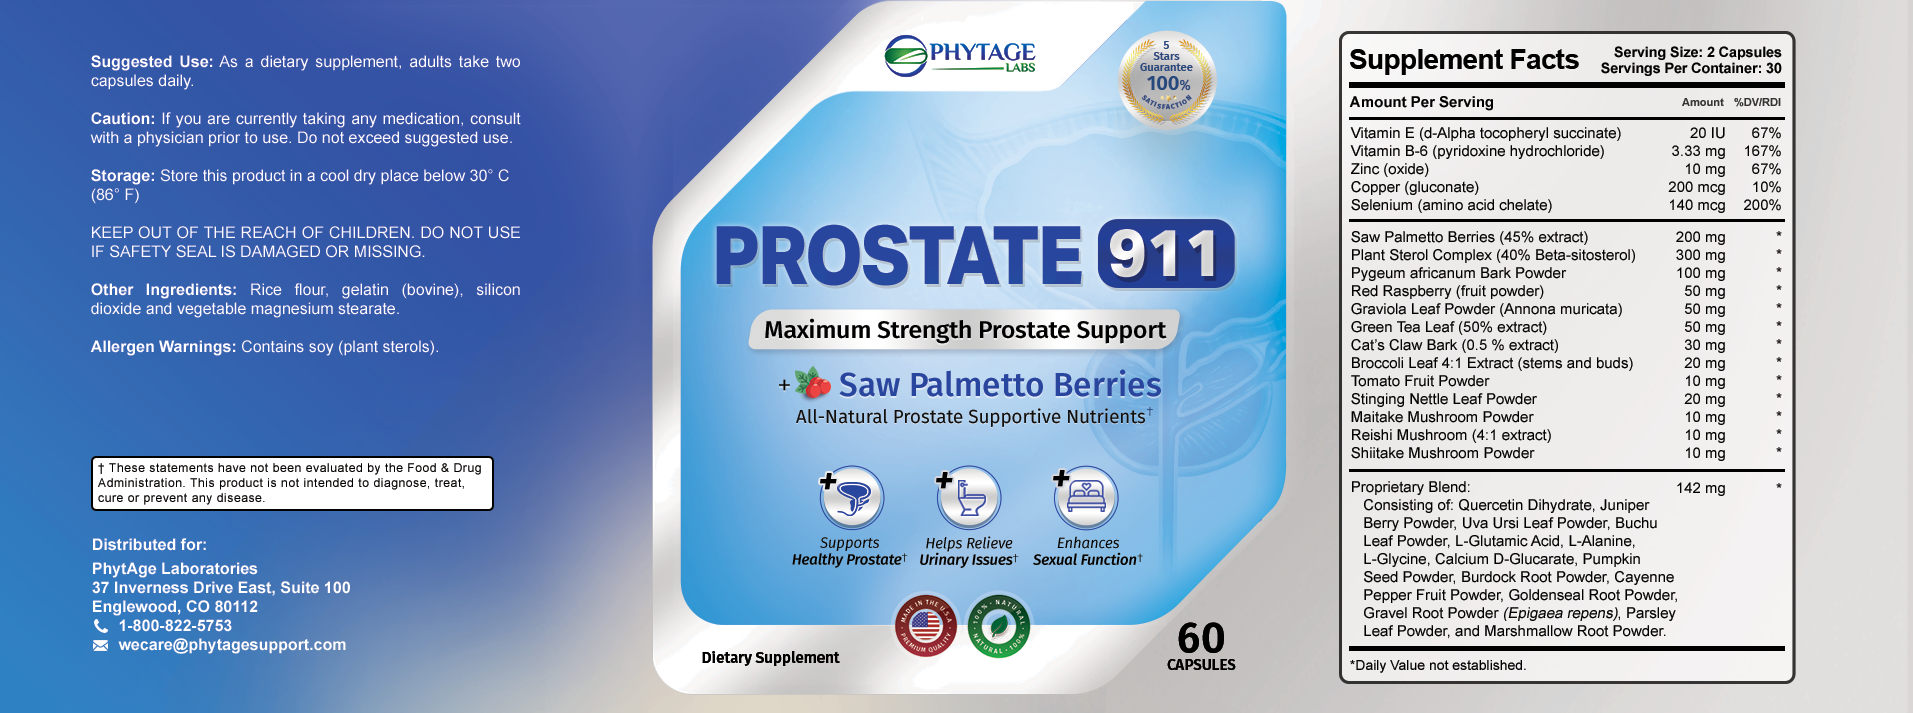 what are the ingredients in Prostate 911